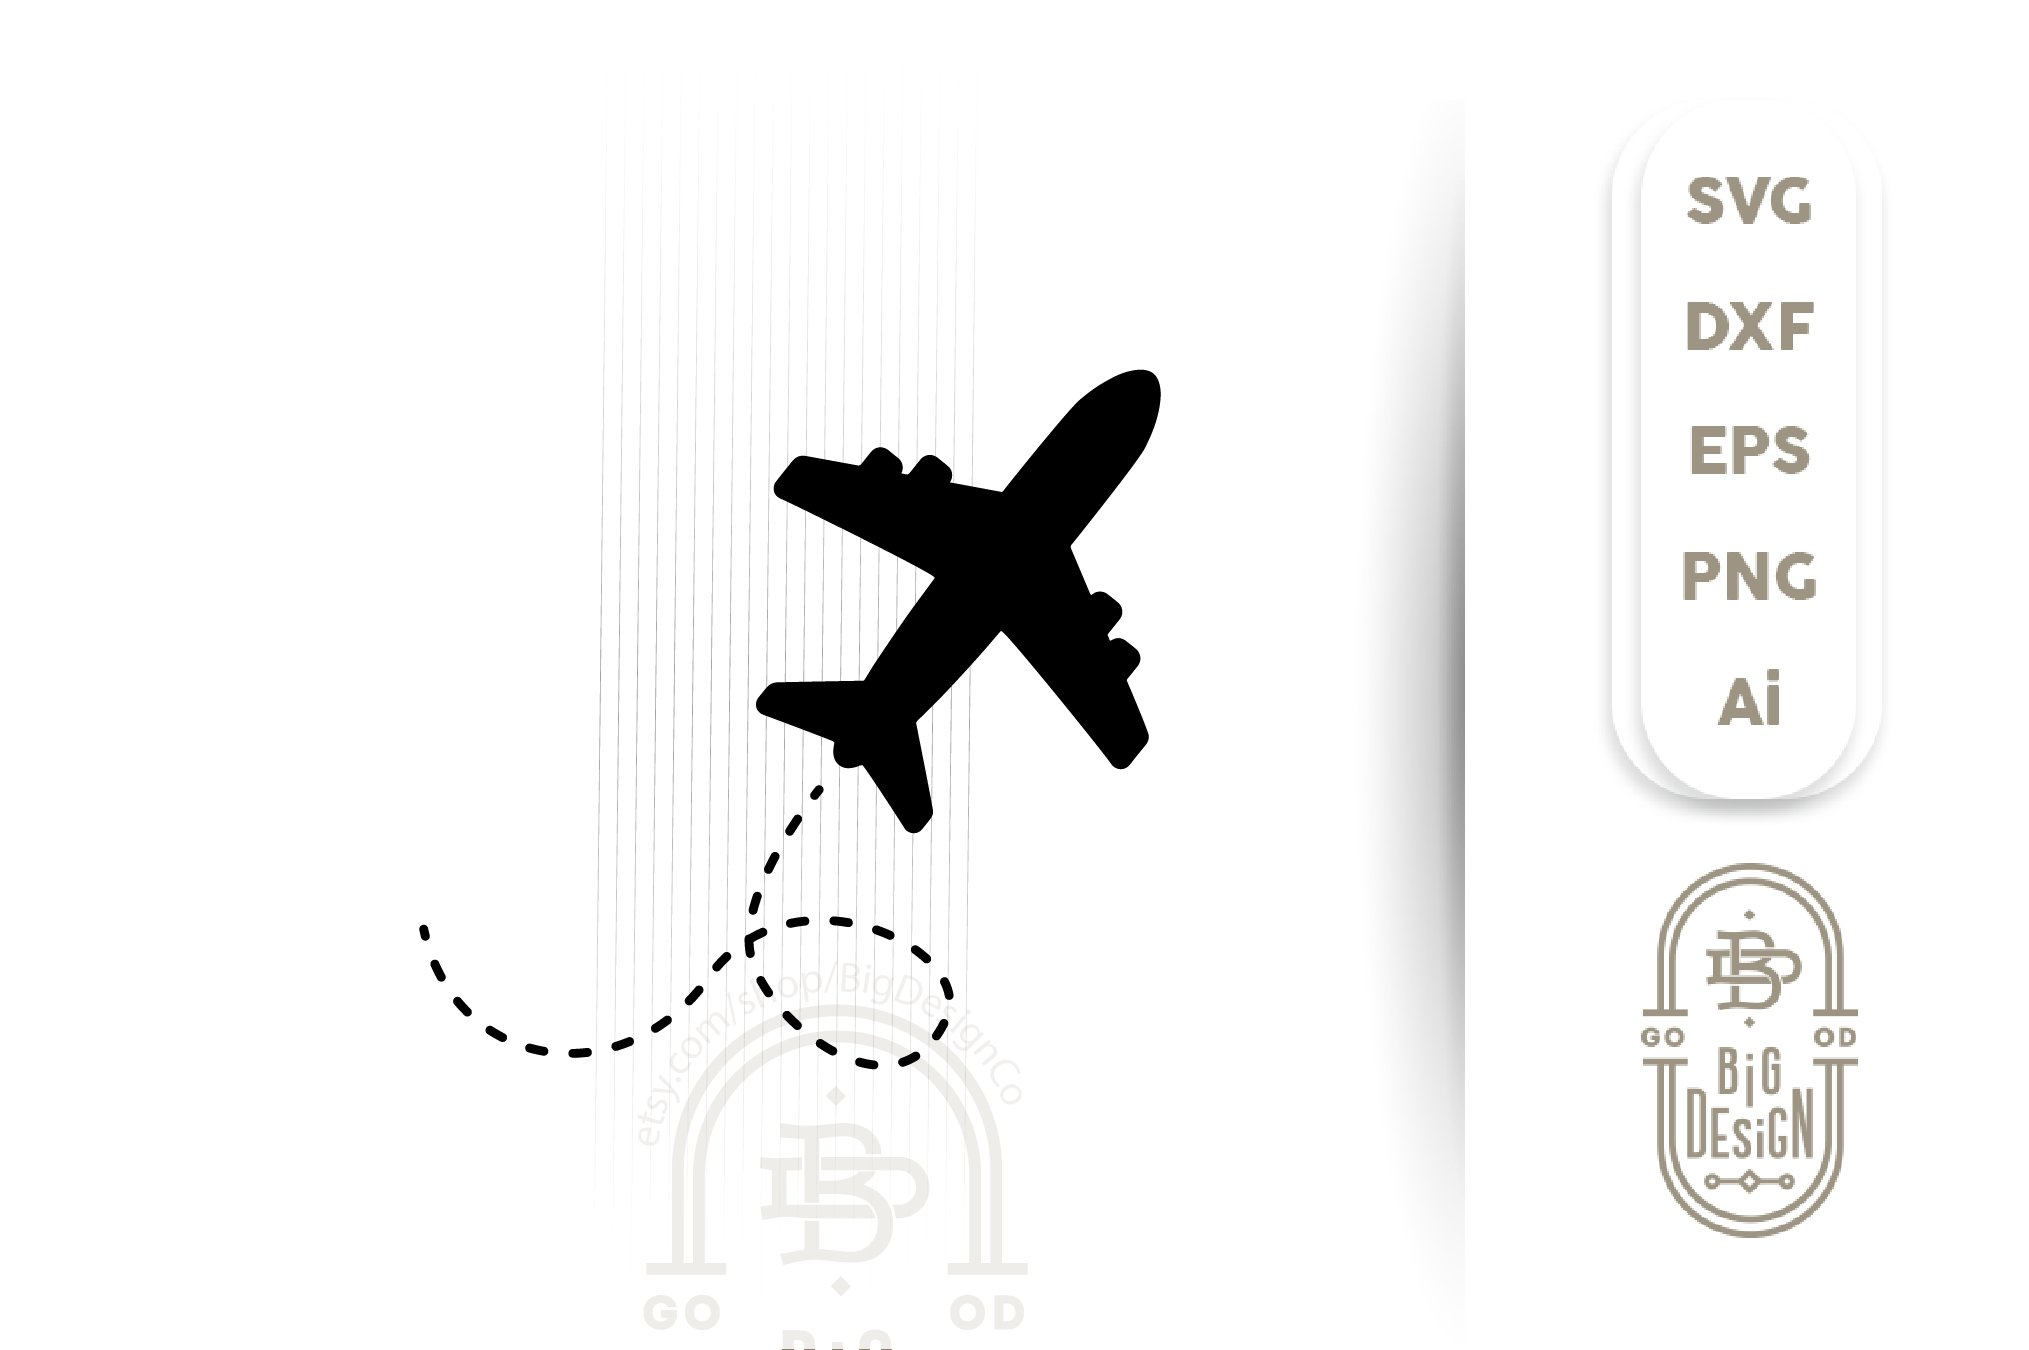 Airplane Silhouette Svg File Travel Svg Cut File 520707 Svgs